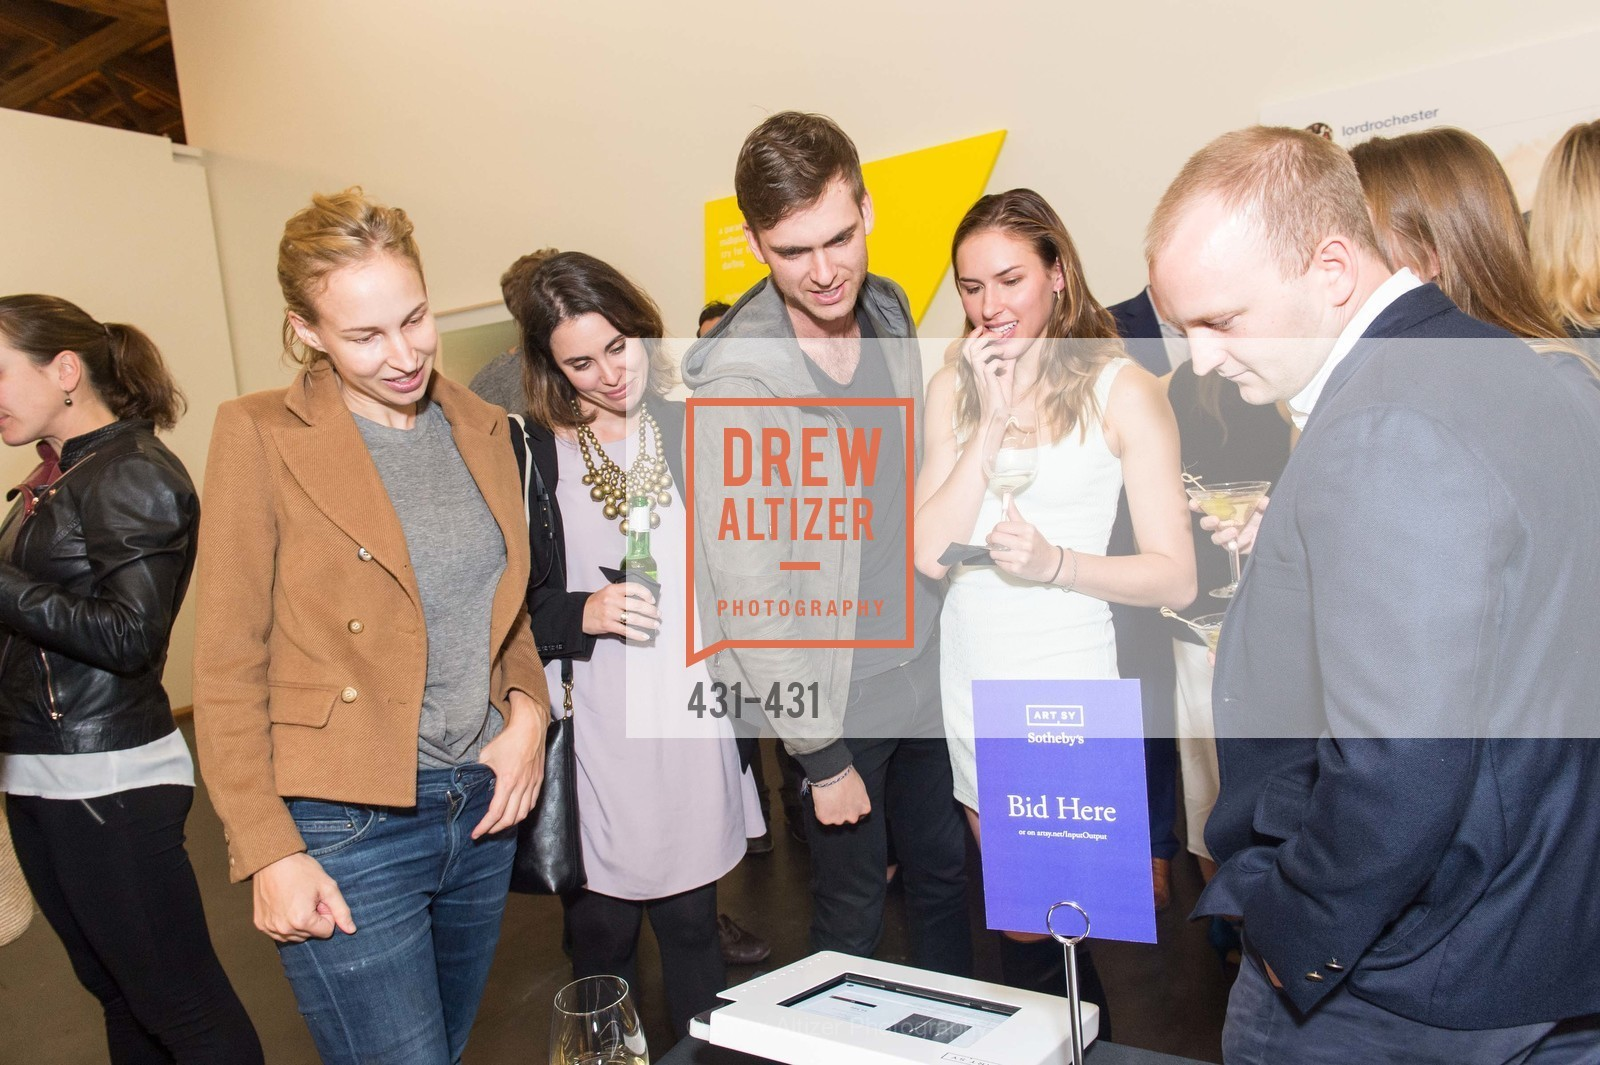 Hailey Melin, Carter Cleveland, Felicity Conrad, Artsy + Sotheby's Closing Party, Fused. 1401 16th Street, October 30th, 2015,Drew Altizer, Drew Altizer Photography, full-service event agency, private events, San Francisco photographer, photographer California